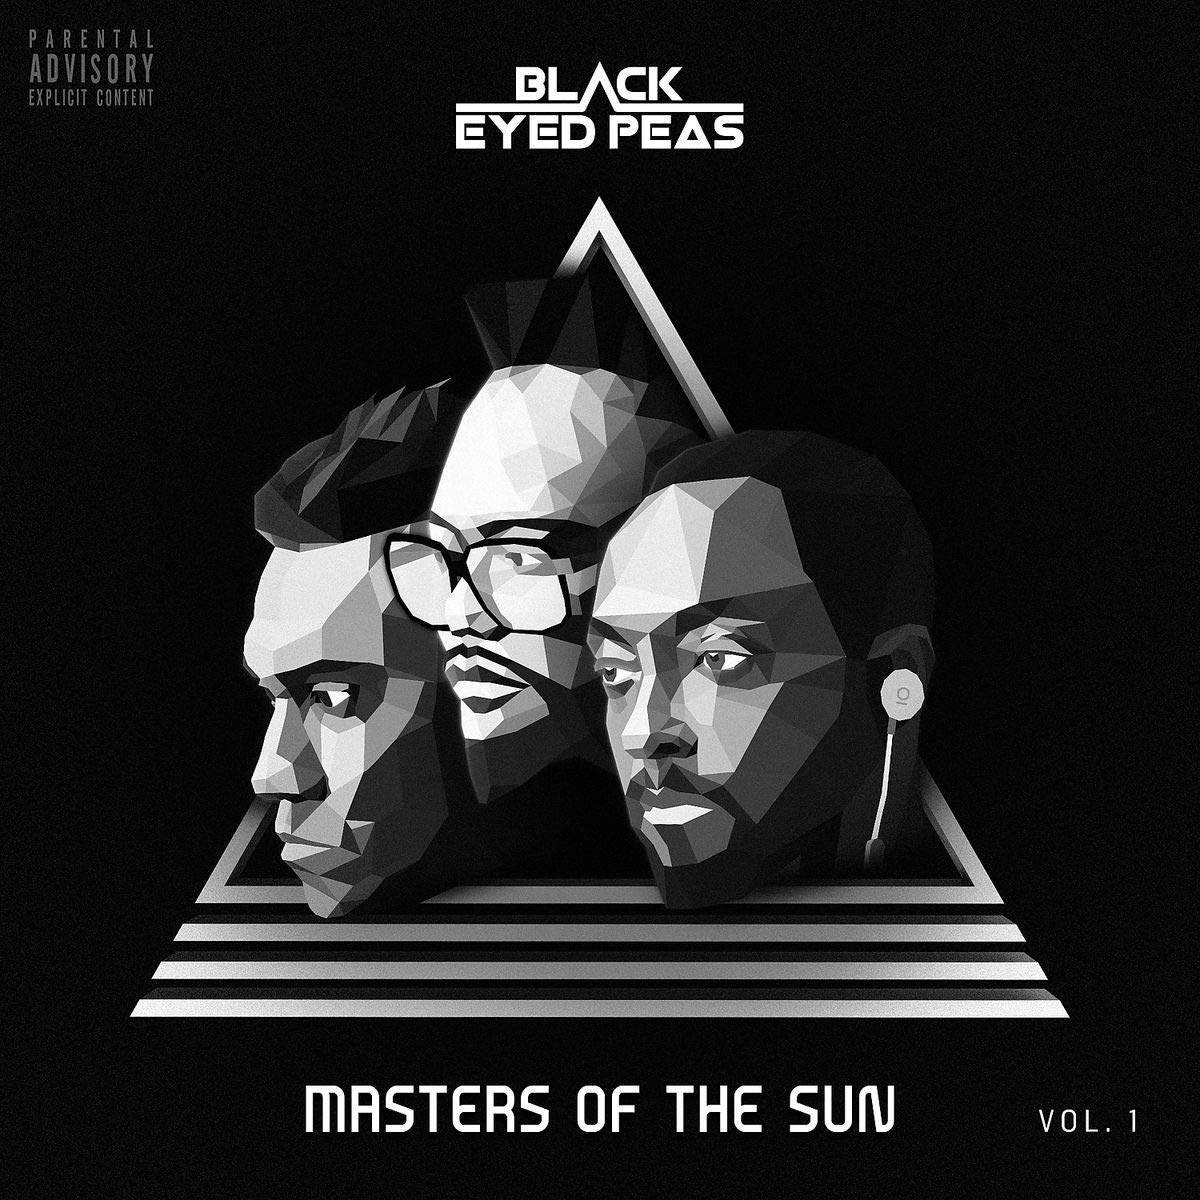 CD Shop - BLACK EYED PEAS MASTERS OF THE SUN